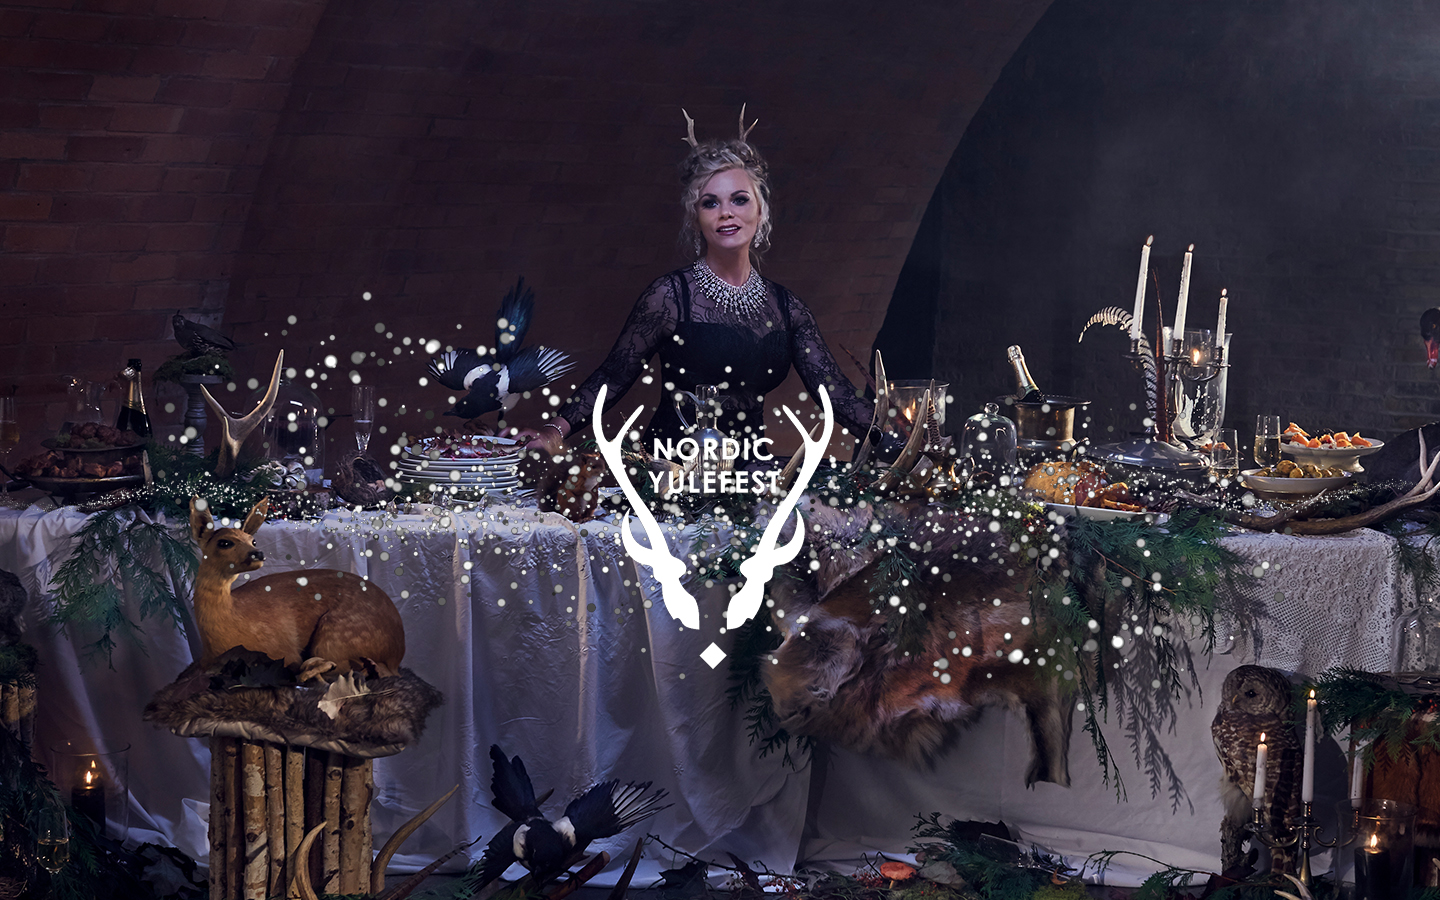 Meredith Collective creates an enchanting Nordic Yulefest celebrating Christmas in style